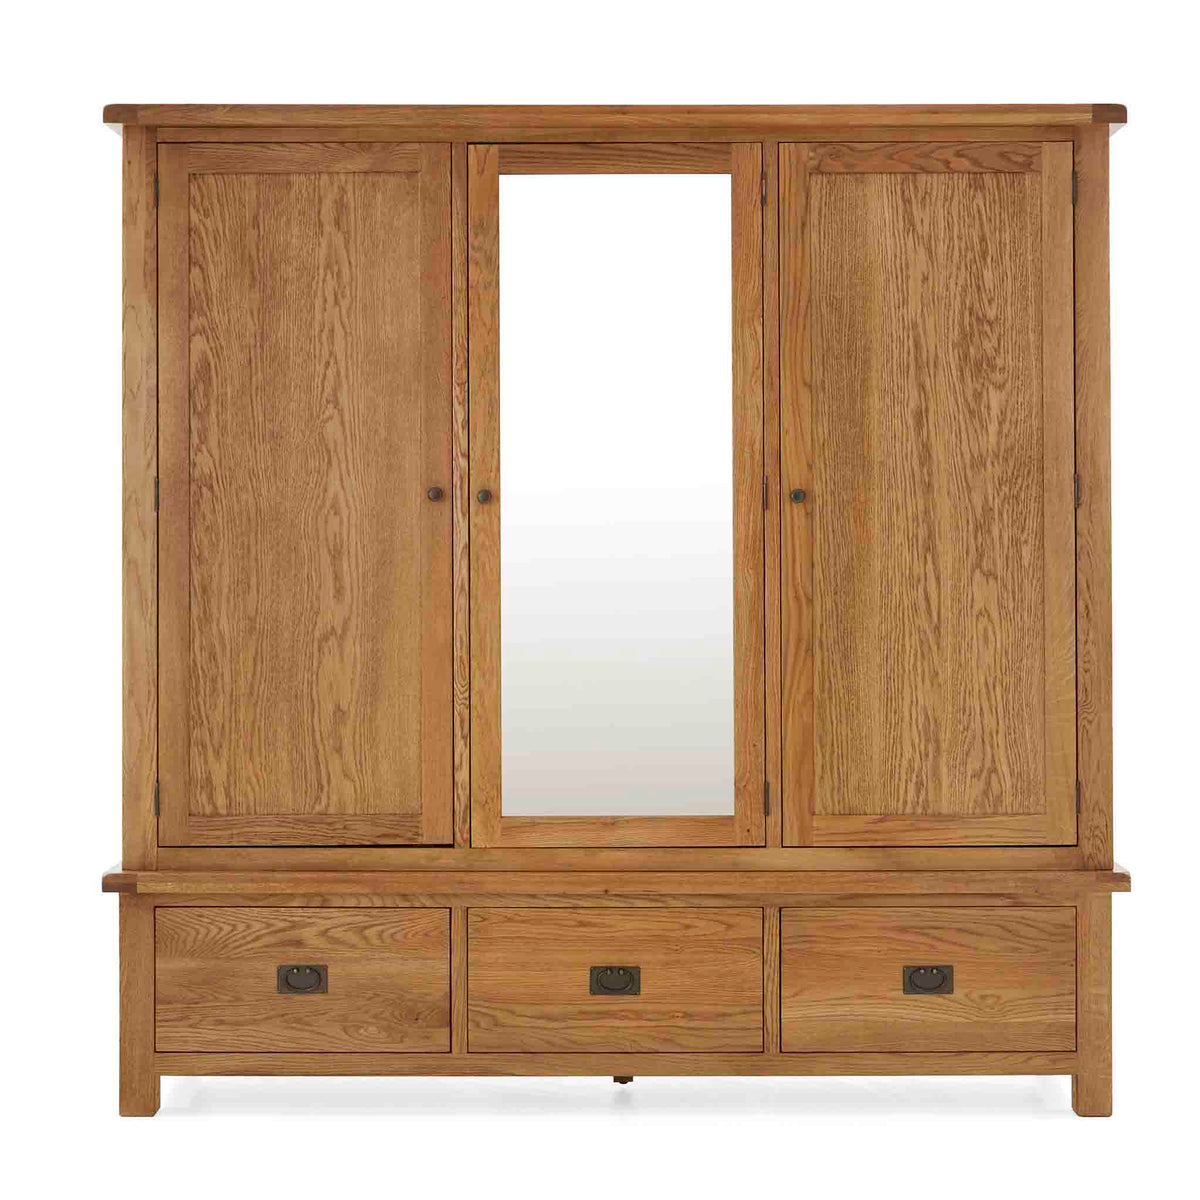 Zelah Oak Large Triple Wardrobe with Drawers - Front View